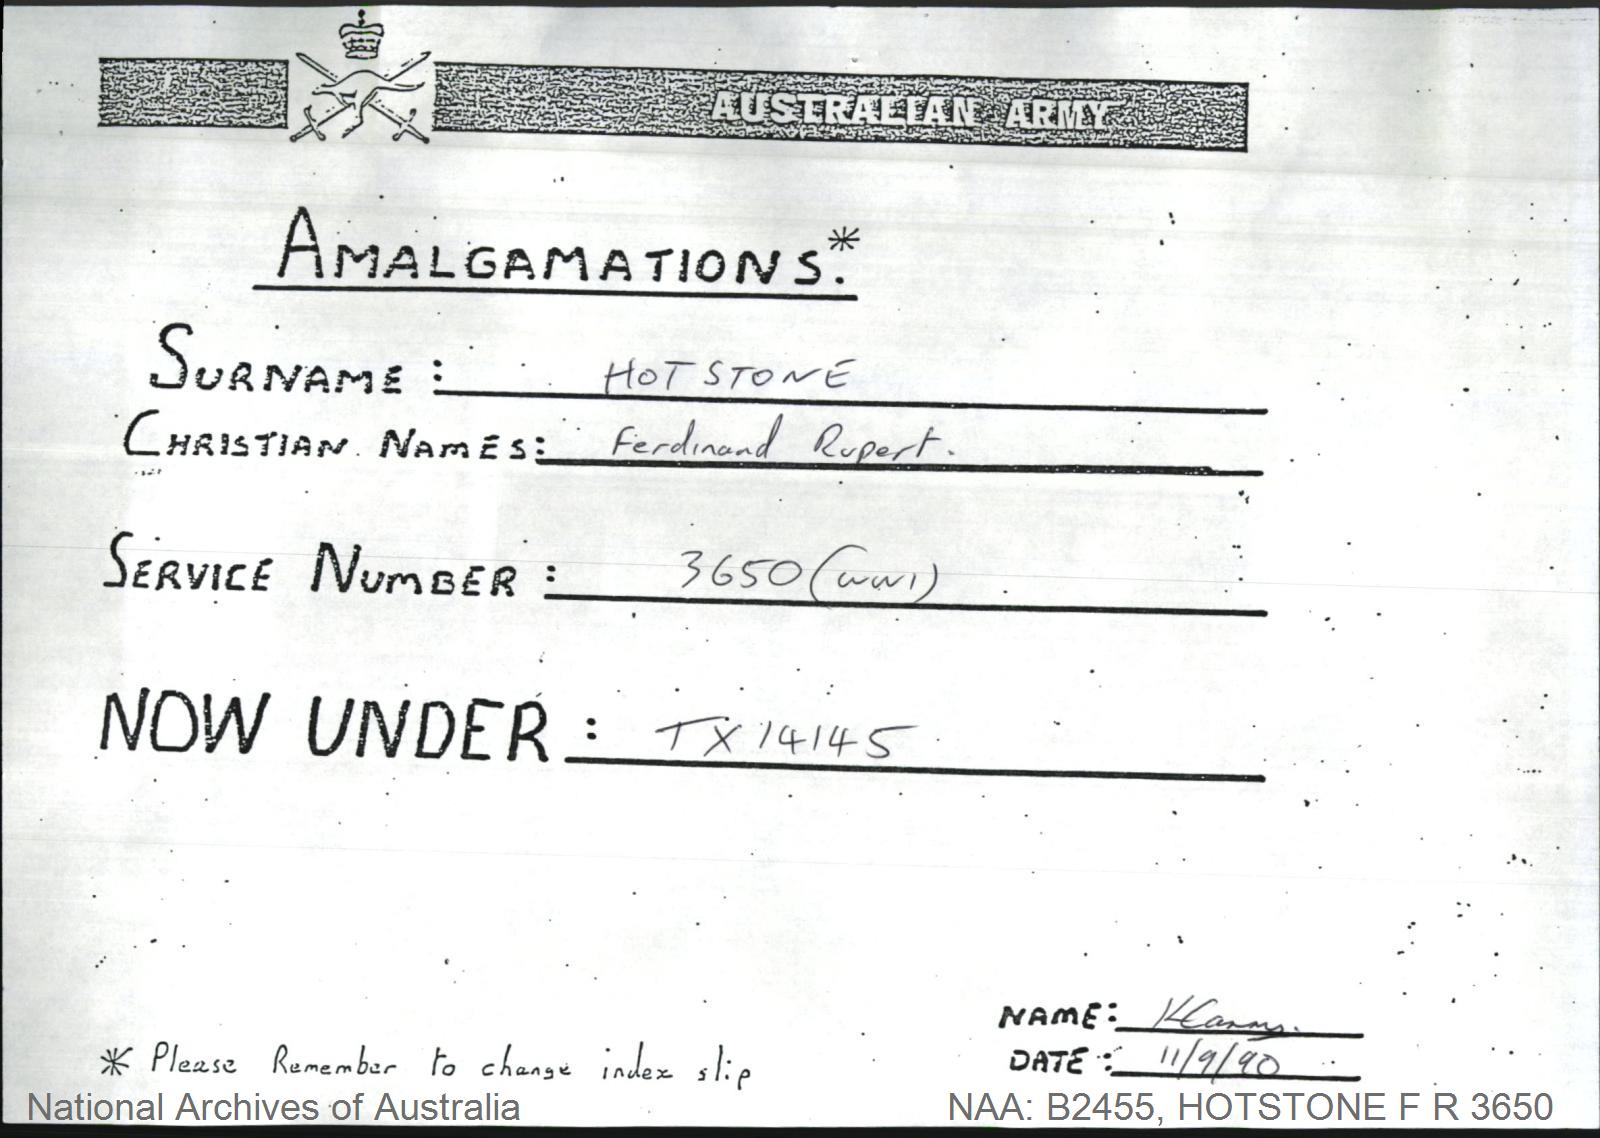 HOTSTONE Ferdinand Rupert : Service Number - 3650 : Note This record consists of an empty envelope only.  The contents have been amalgamated with this person's World War II service documents.  The World War II service number is TX14145.  Contact Archives Staff for assistance in requesting the amalgamated record.